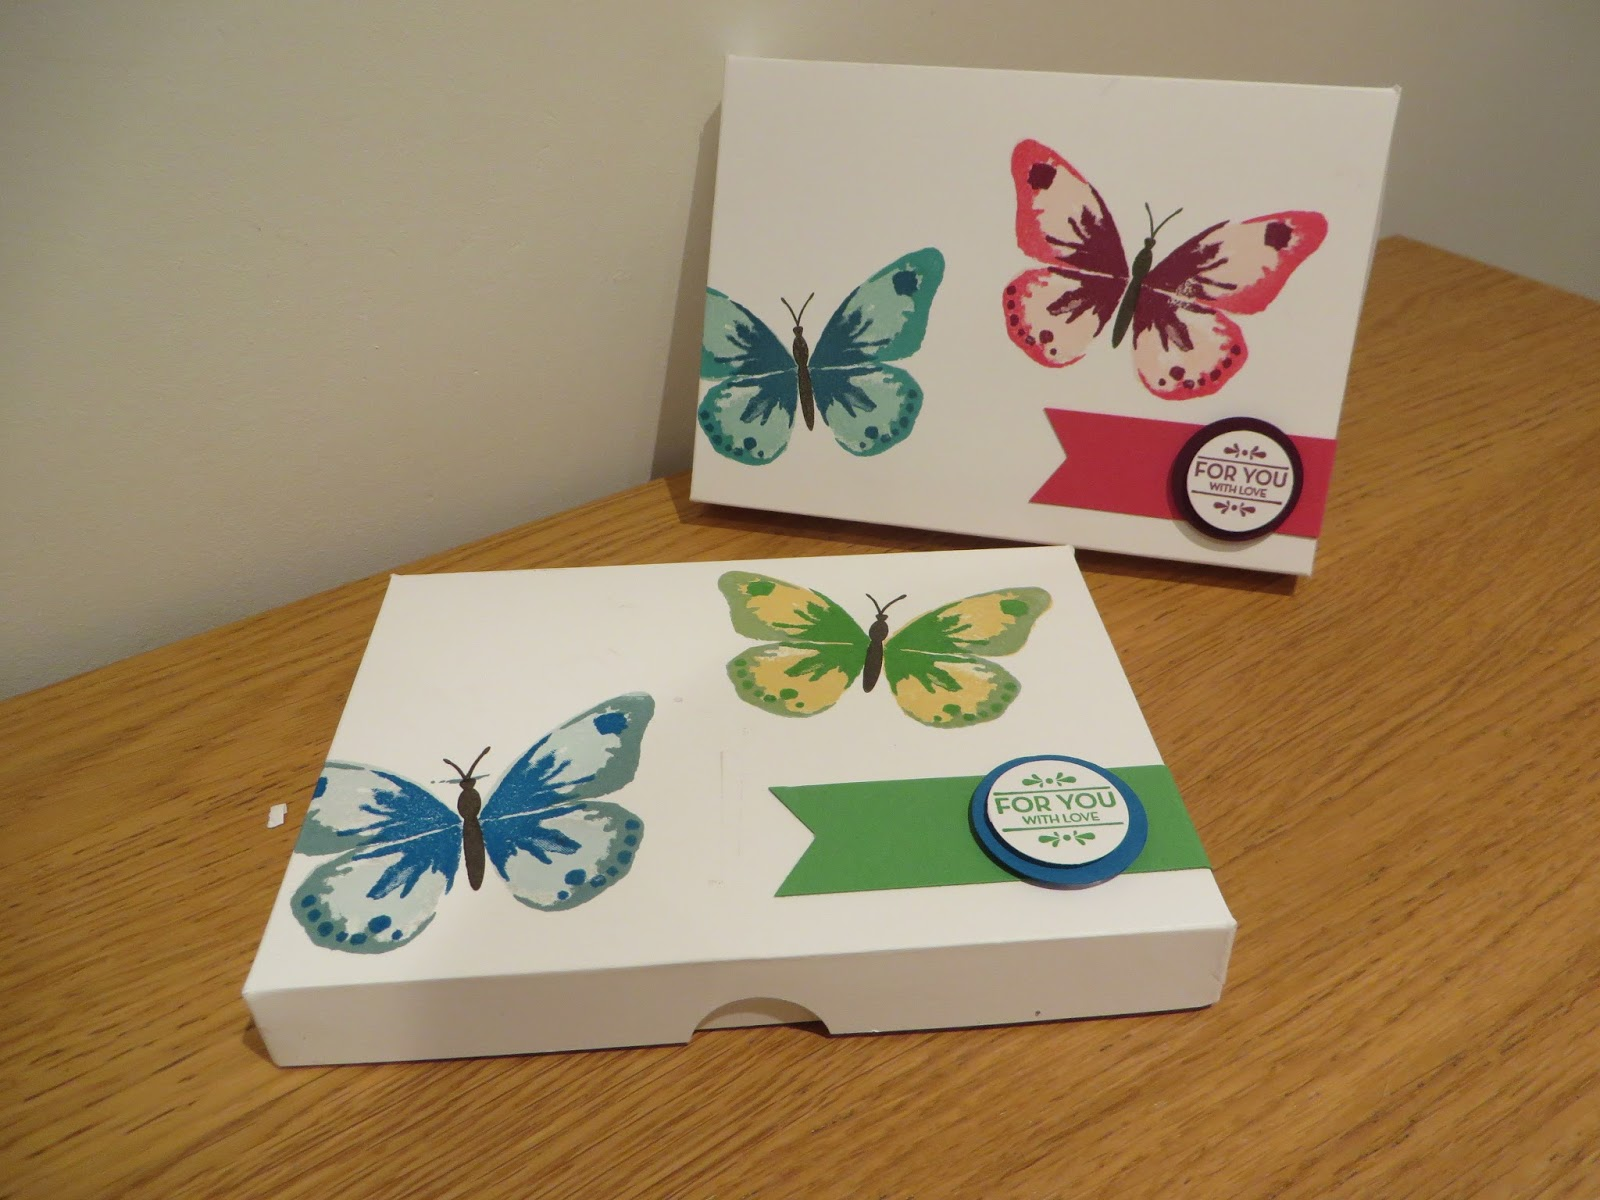 Craftycarolinecreates Watercolor Wings Card Gift Box Handmade